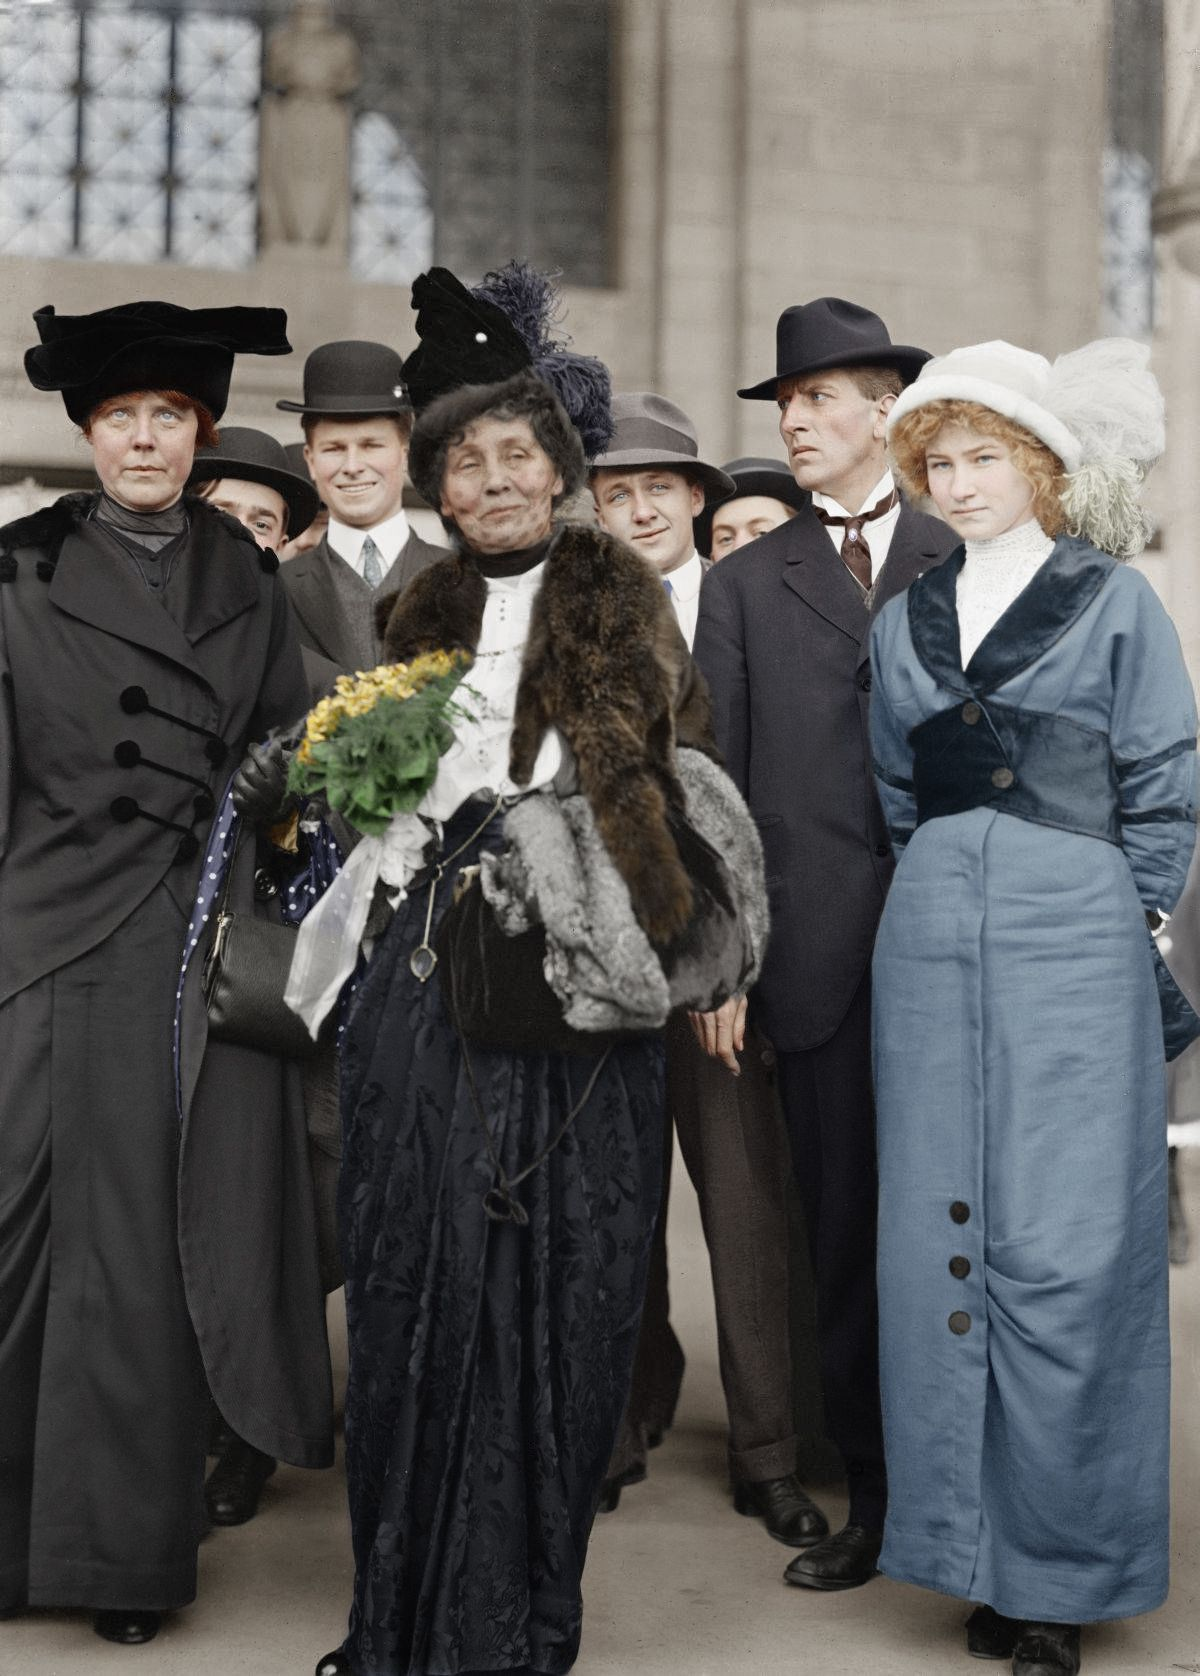 Ibyp07ohpm0neo Jpg 1200 1676 Women In History Suffragette Colorized History [ 1676 x 1200 Pixel ]